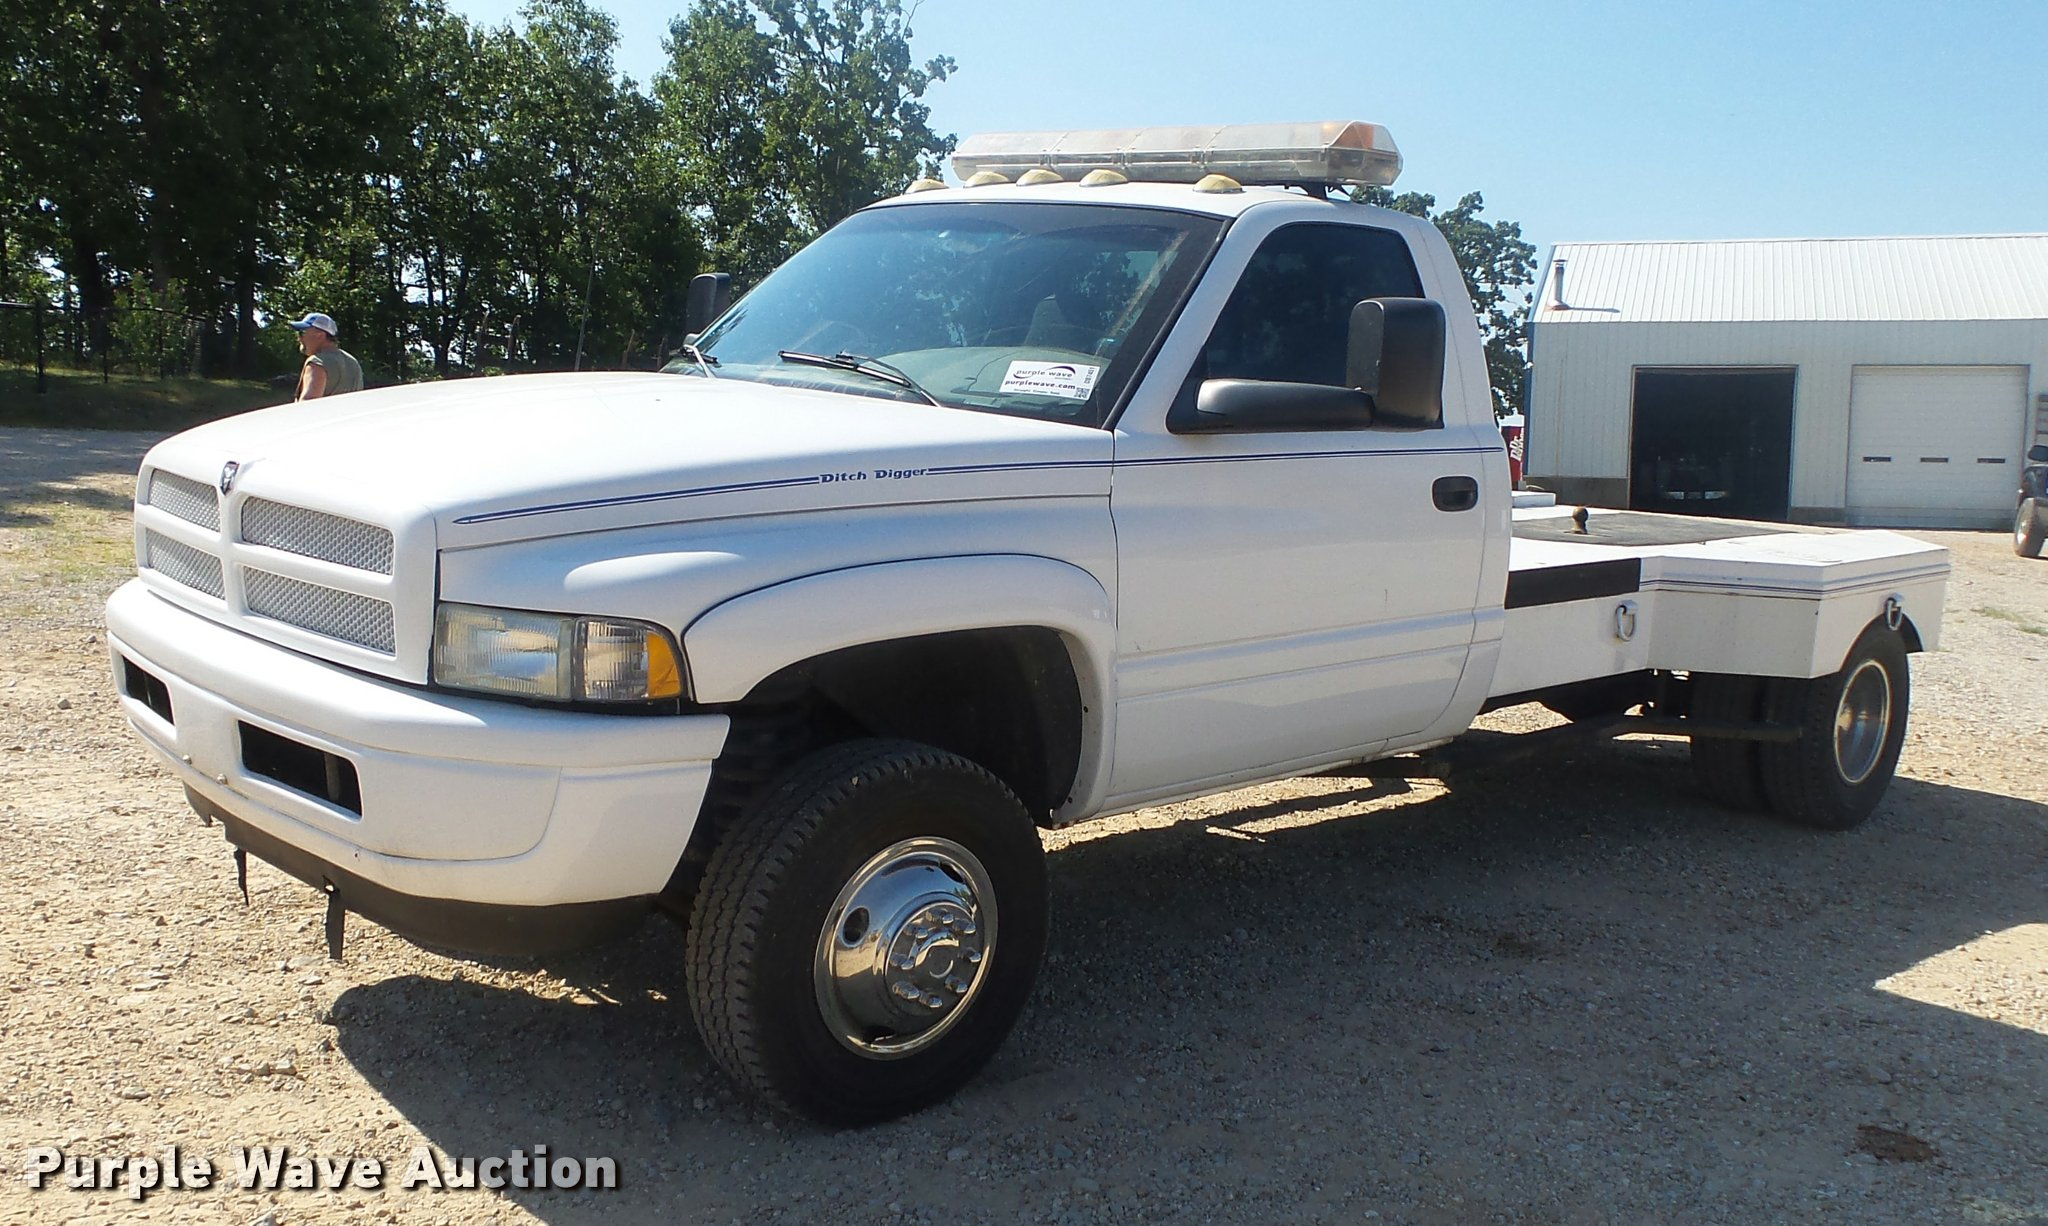 1998 Dodge Ram 3500 Flatbed Pickup Truck In Camdenton Mo Item Db7451 Sold Purple Wave